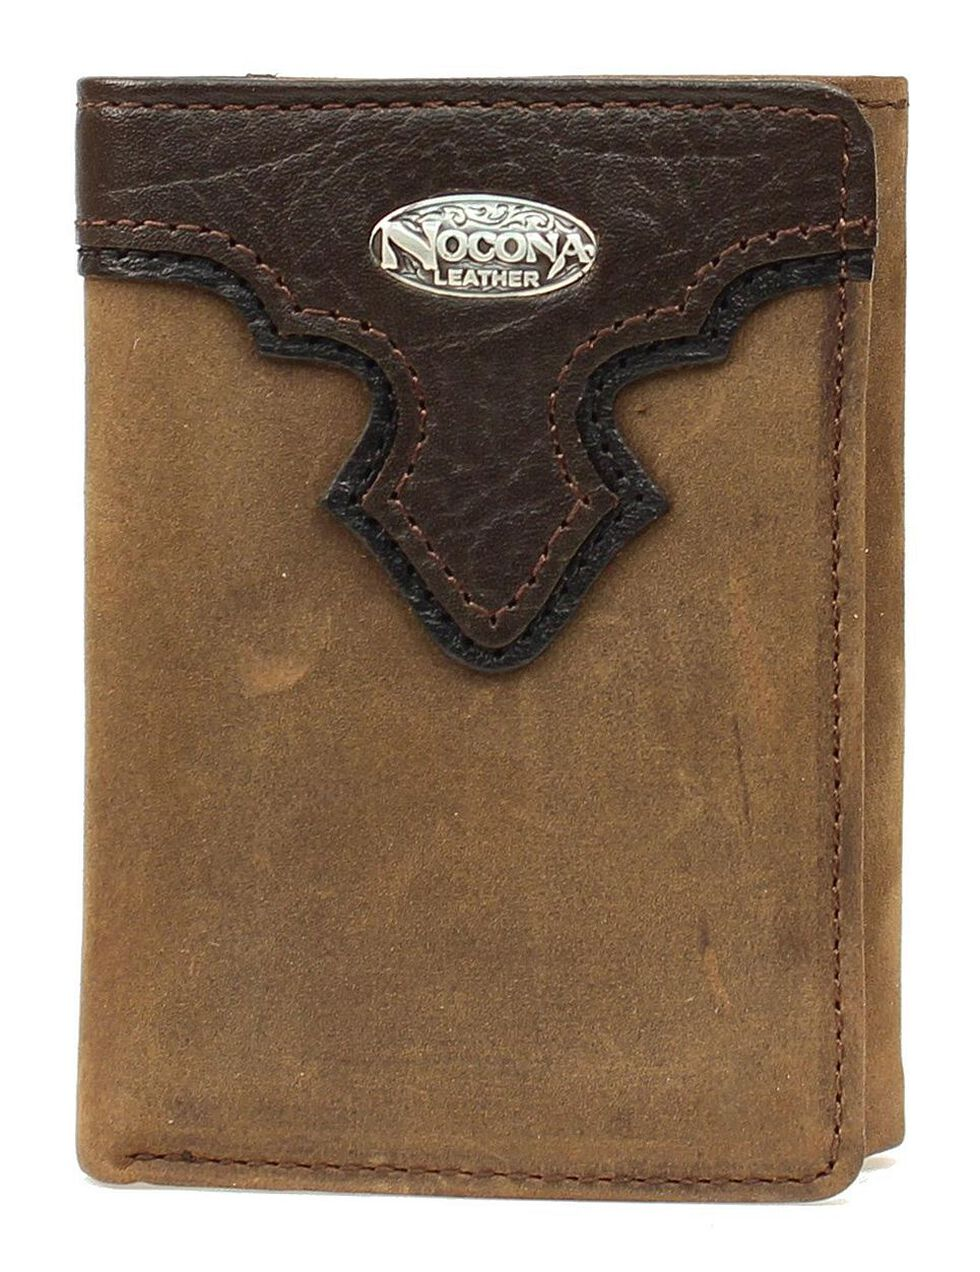 Nocona Distressed Concho Overlay Tri-Fold Wallet, Brown, hi-res